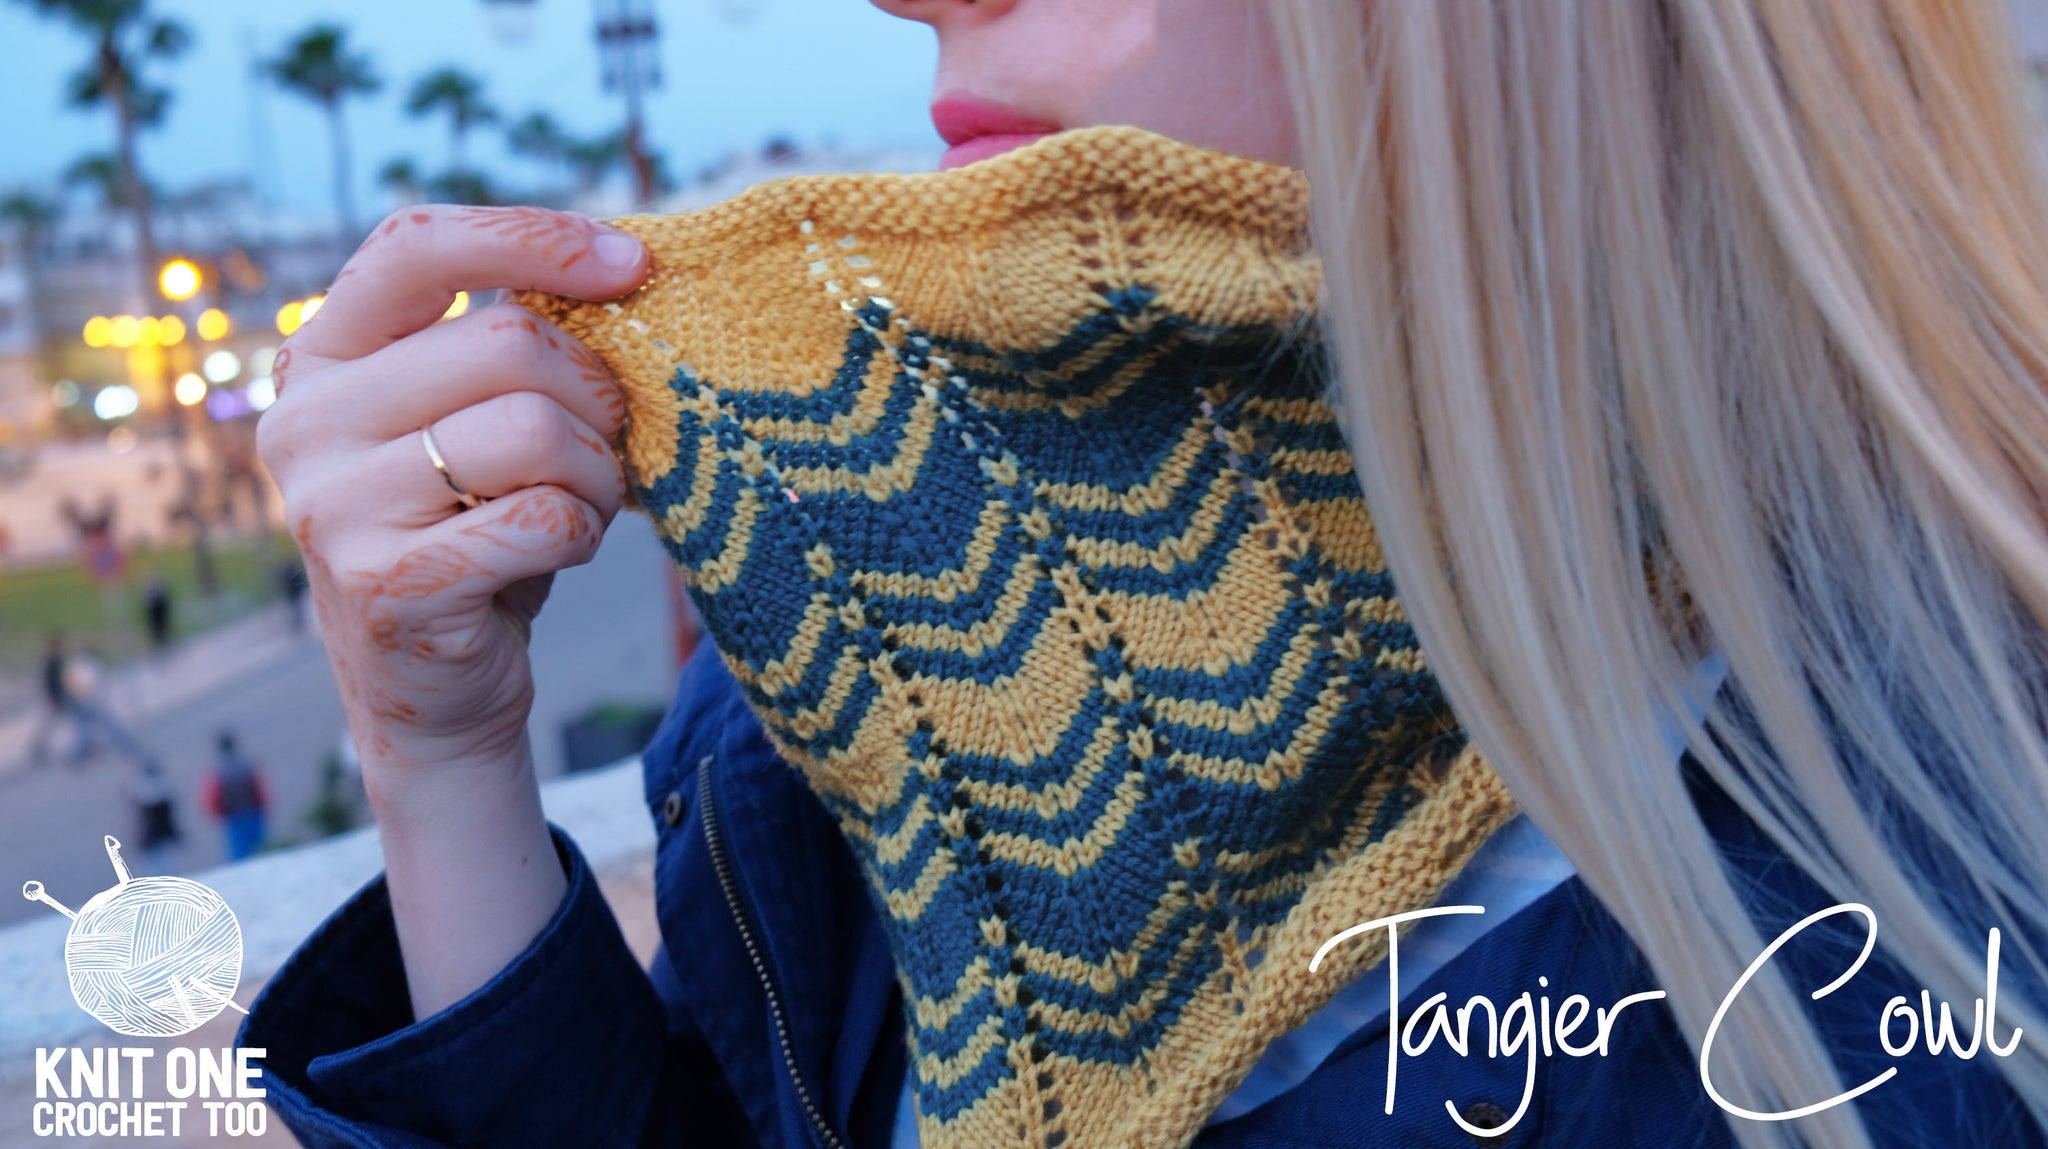 Tangier Cowl 2408 Knit One Crochet Too